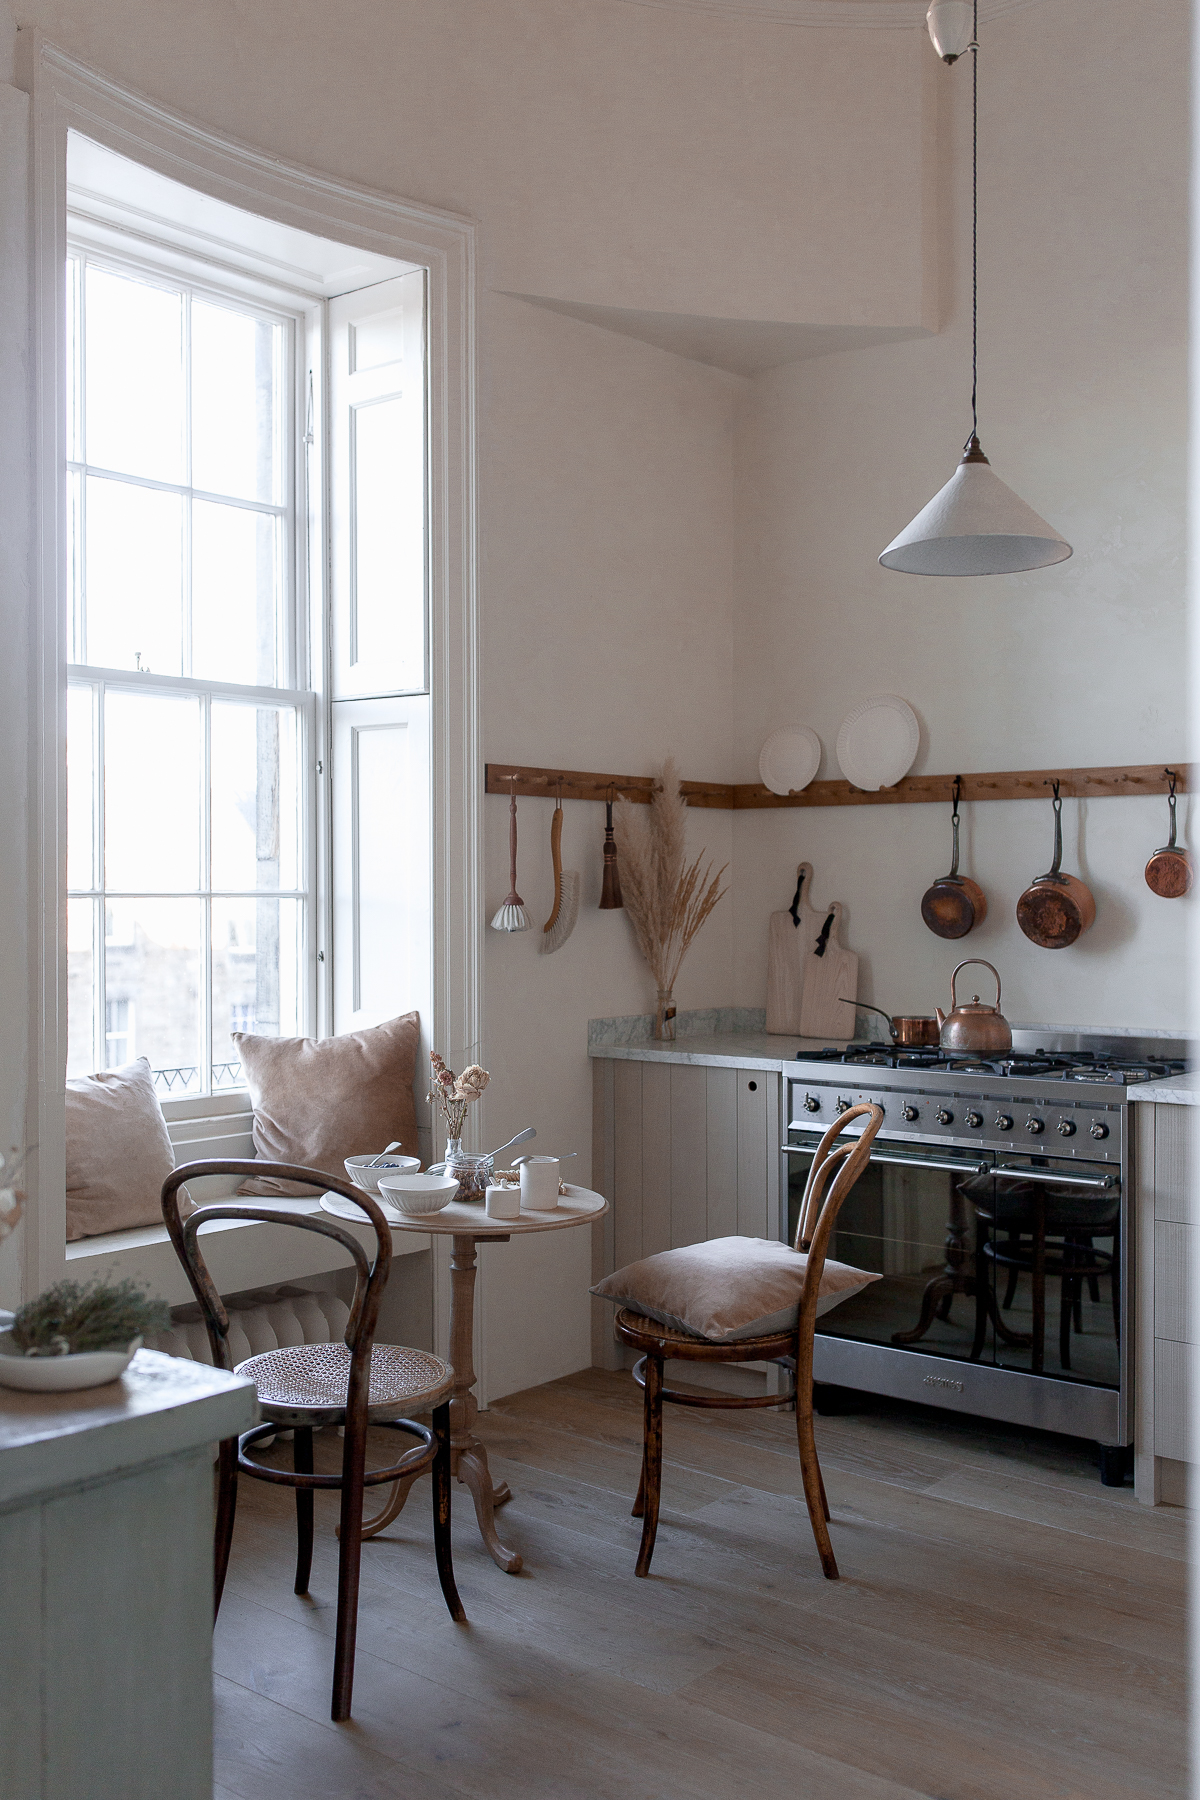 2. Photography Credit to Ingredients LDN - The Ingredients LDN Kitchen by deVOL - Low-Res.jpg